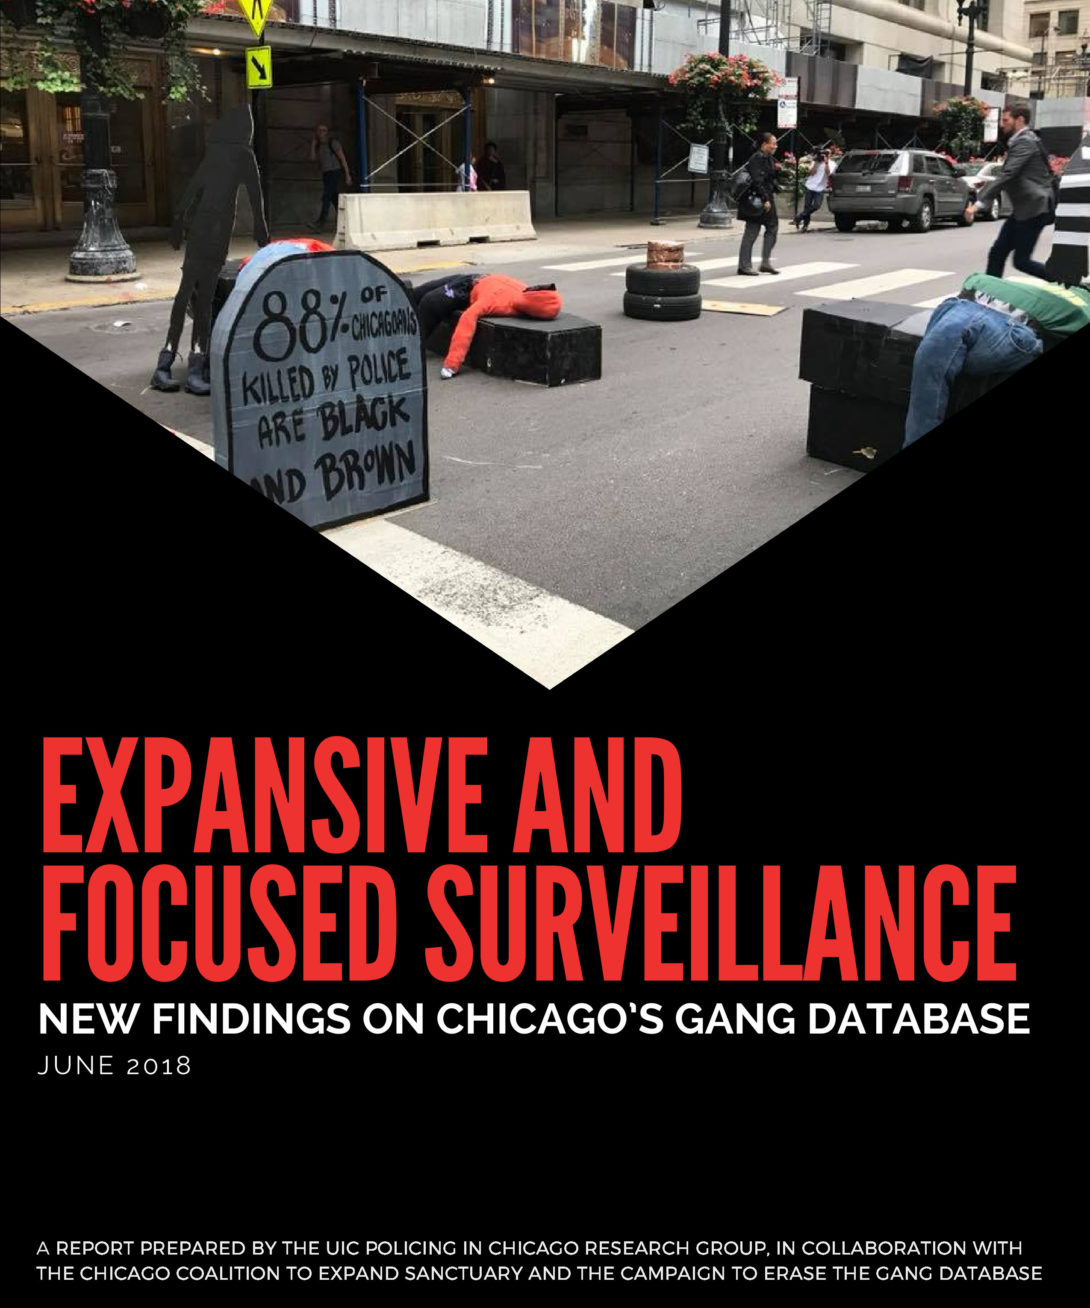 Expansive and Focused Surveillance: New Findings on Chicago's Gang Database (June 2018)